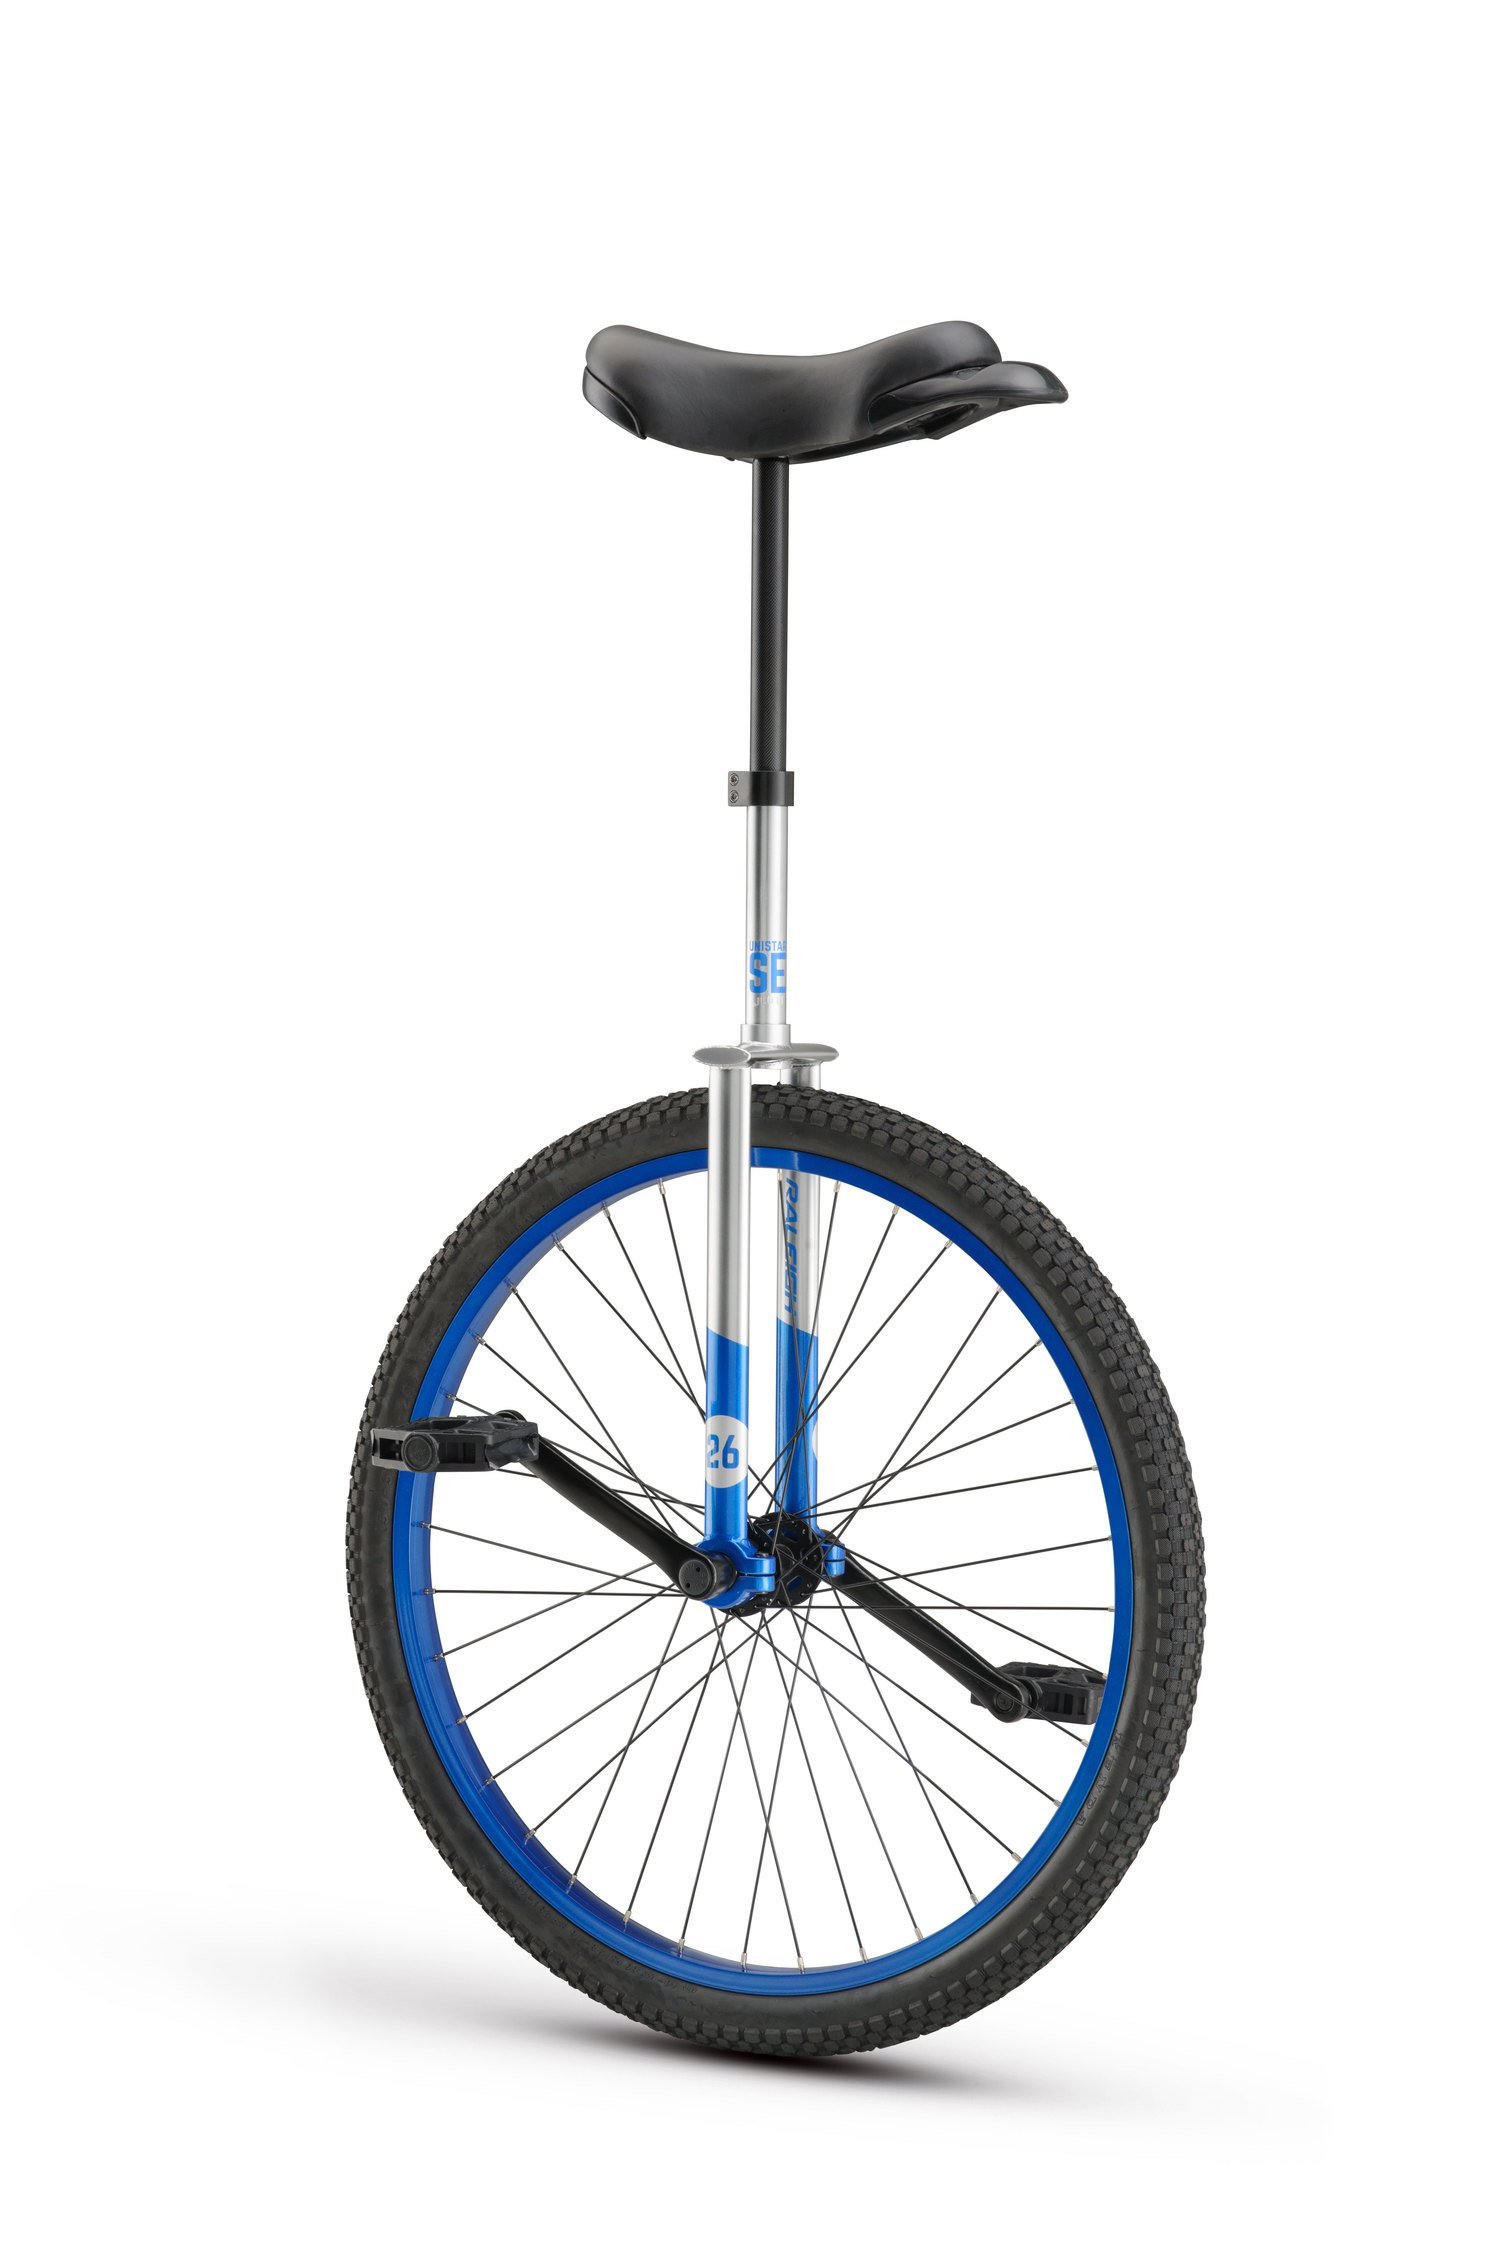 RALEIGH Unistar SE 26, 26inch Wheel Unicycle, Blue by RALEIGH